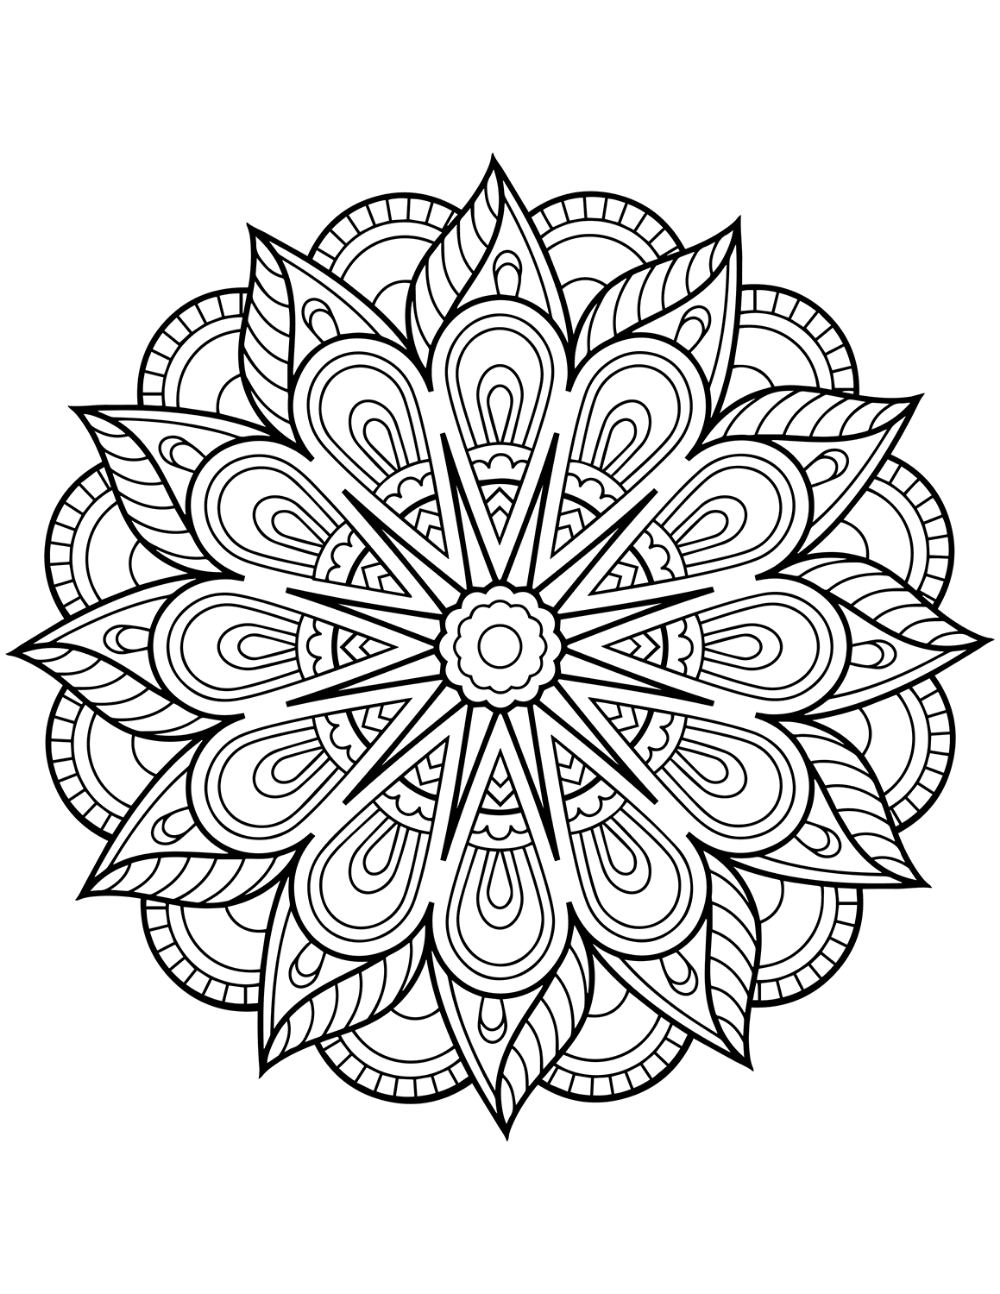 Flower Mandala Coloring Pages Best Coloring Pages For Kids Mandala Coloring Pages Printable Coloring Book Mandala Coloring